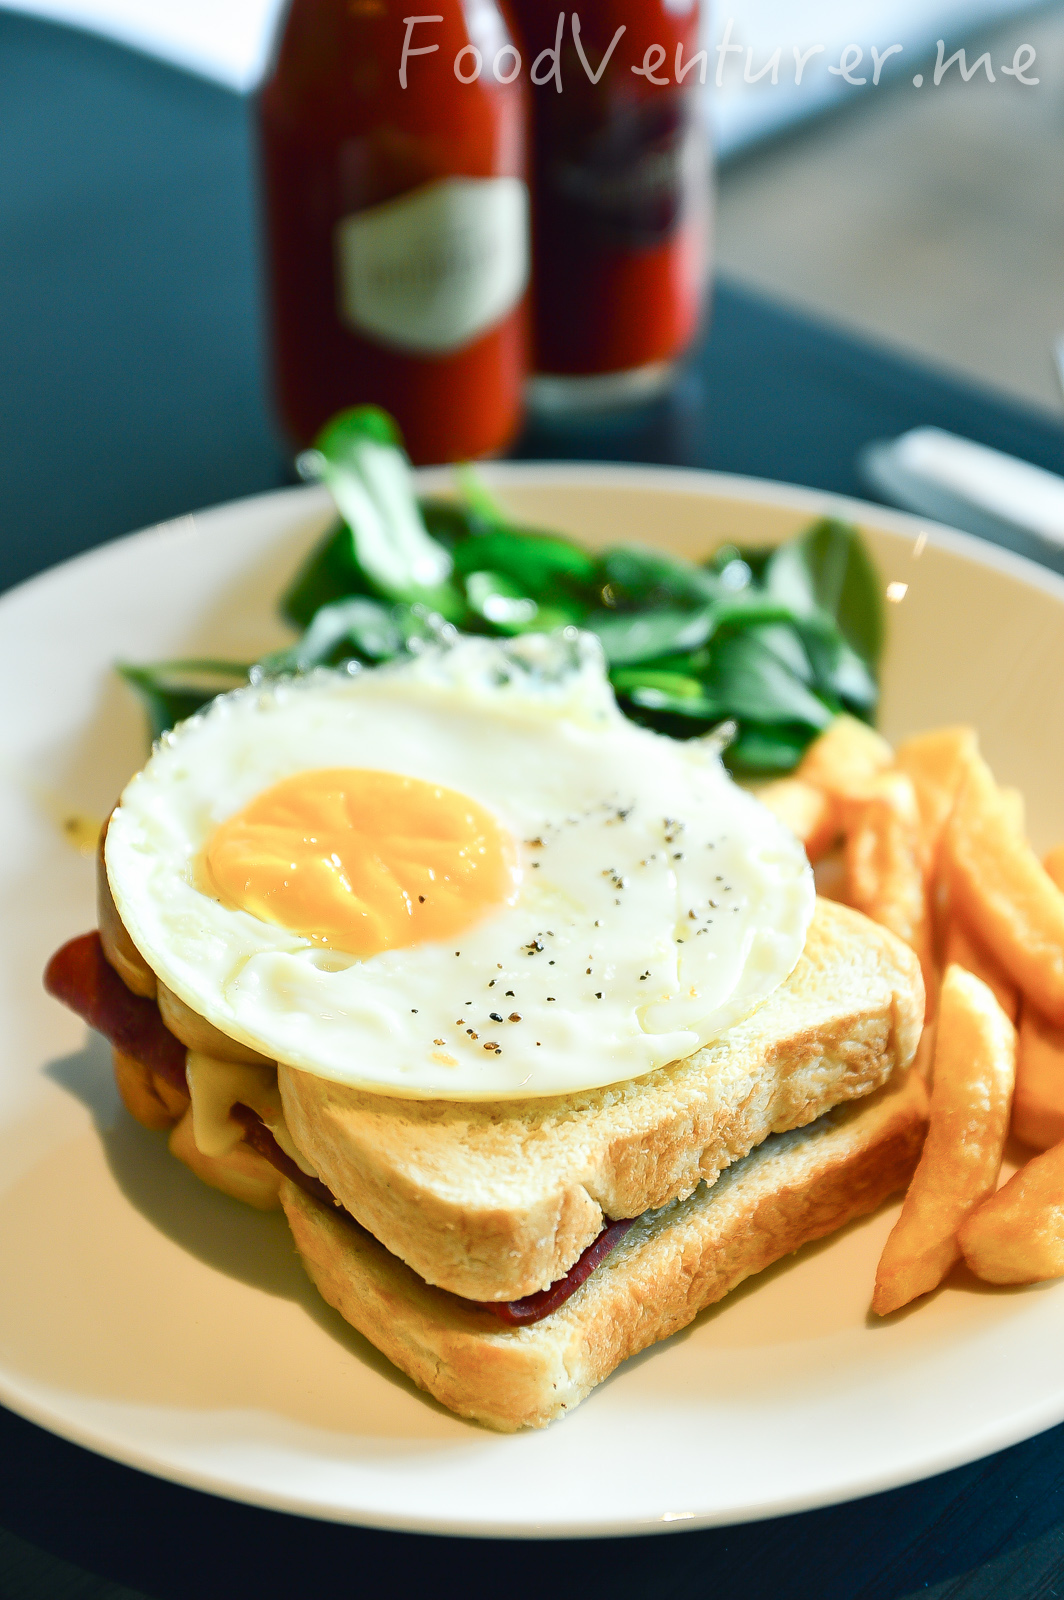 Croque Madame - Le Cafe Gourmand, Gunawarman